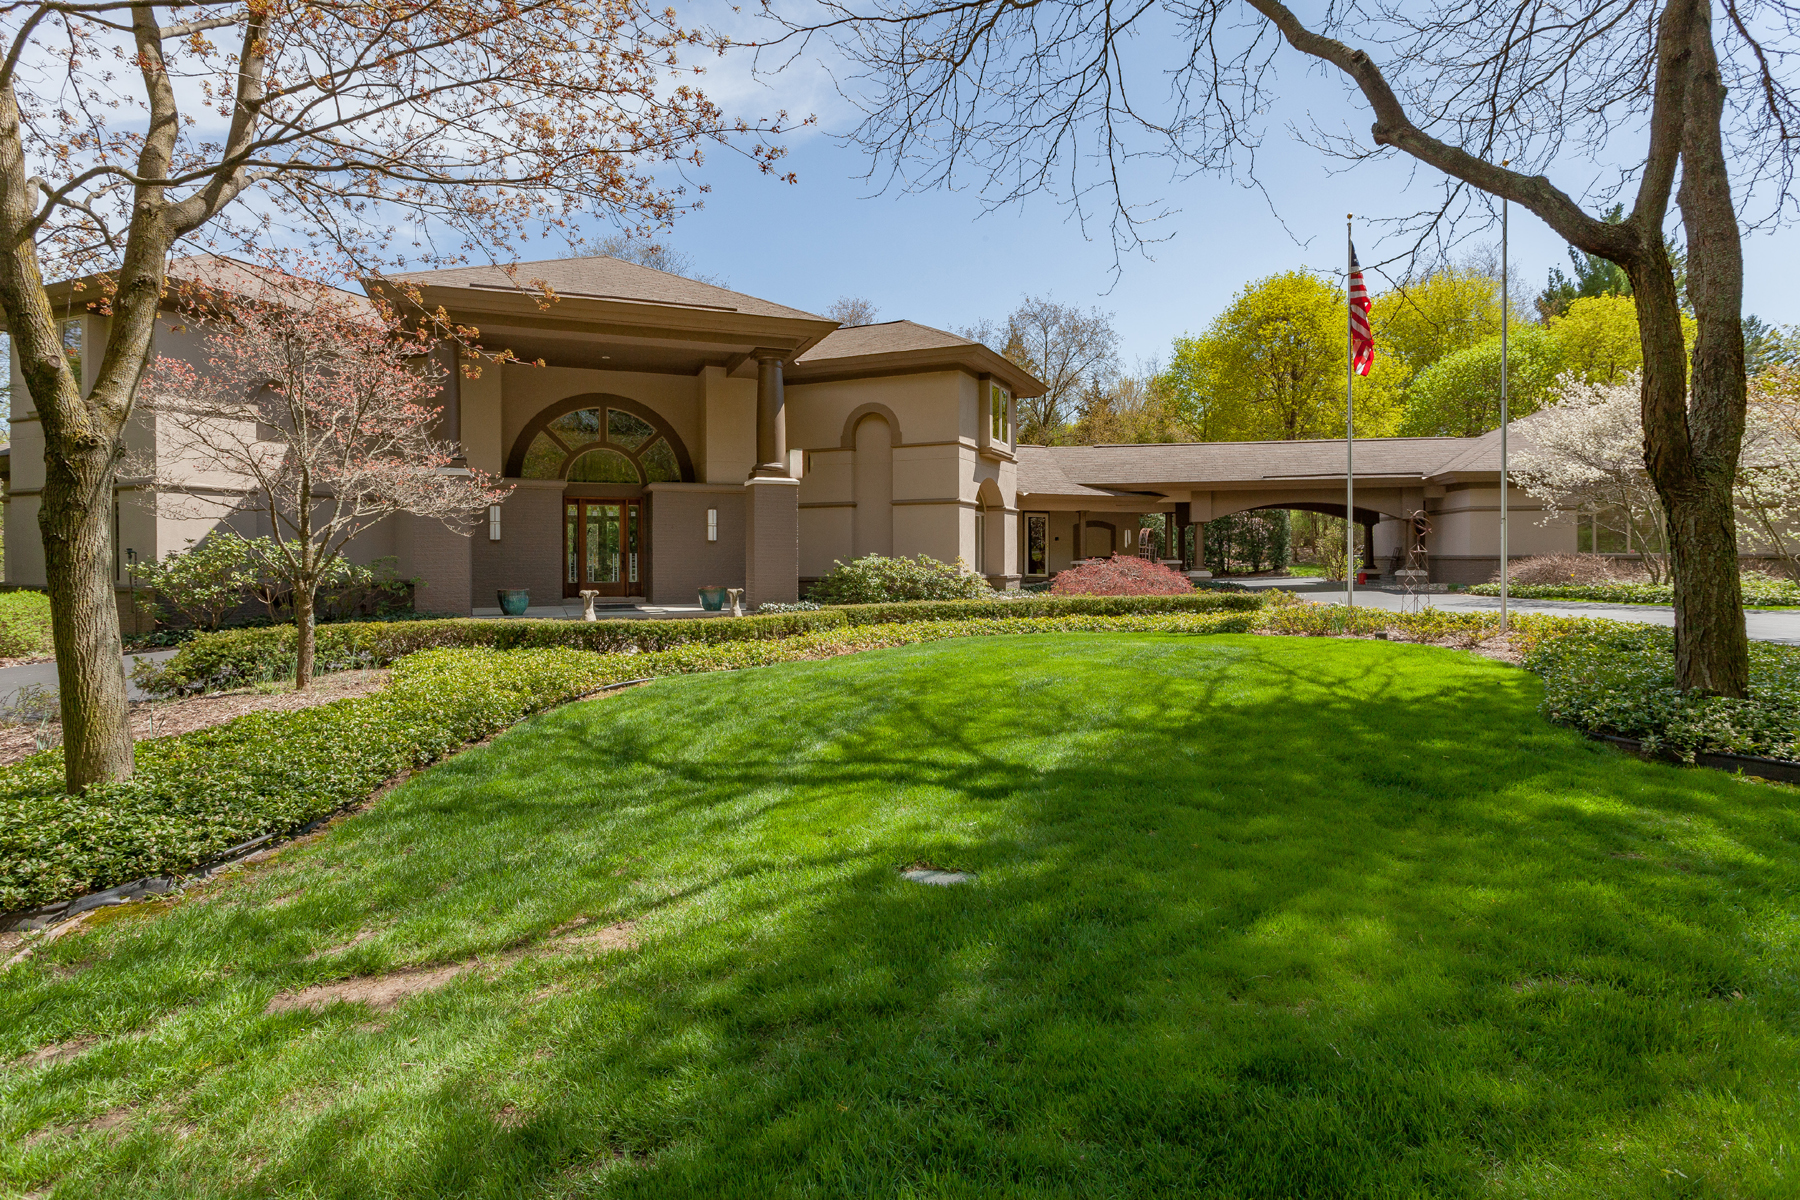 Single Family Home for Sale at Bloomfield Hills 1800 Tiverton Road Bloomfield Hills, Michigan, 48304 United States